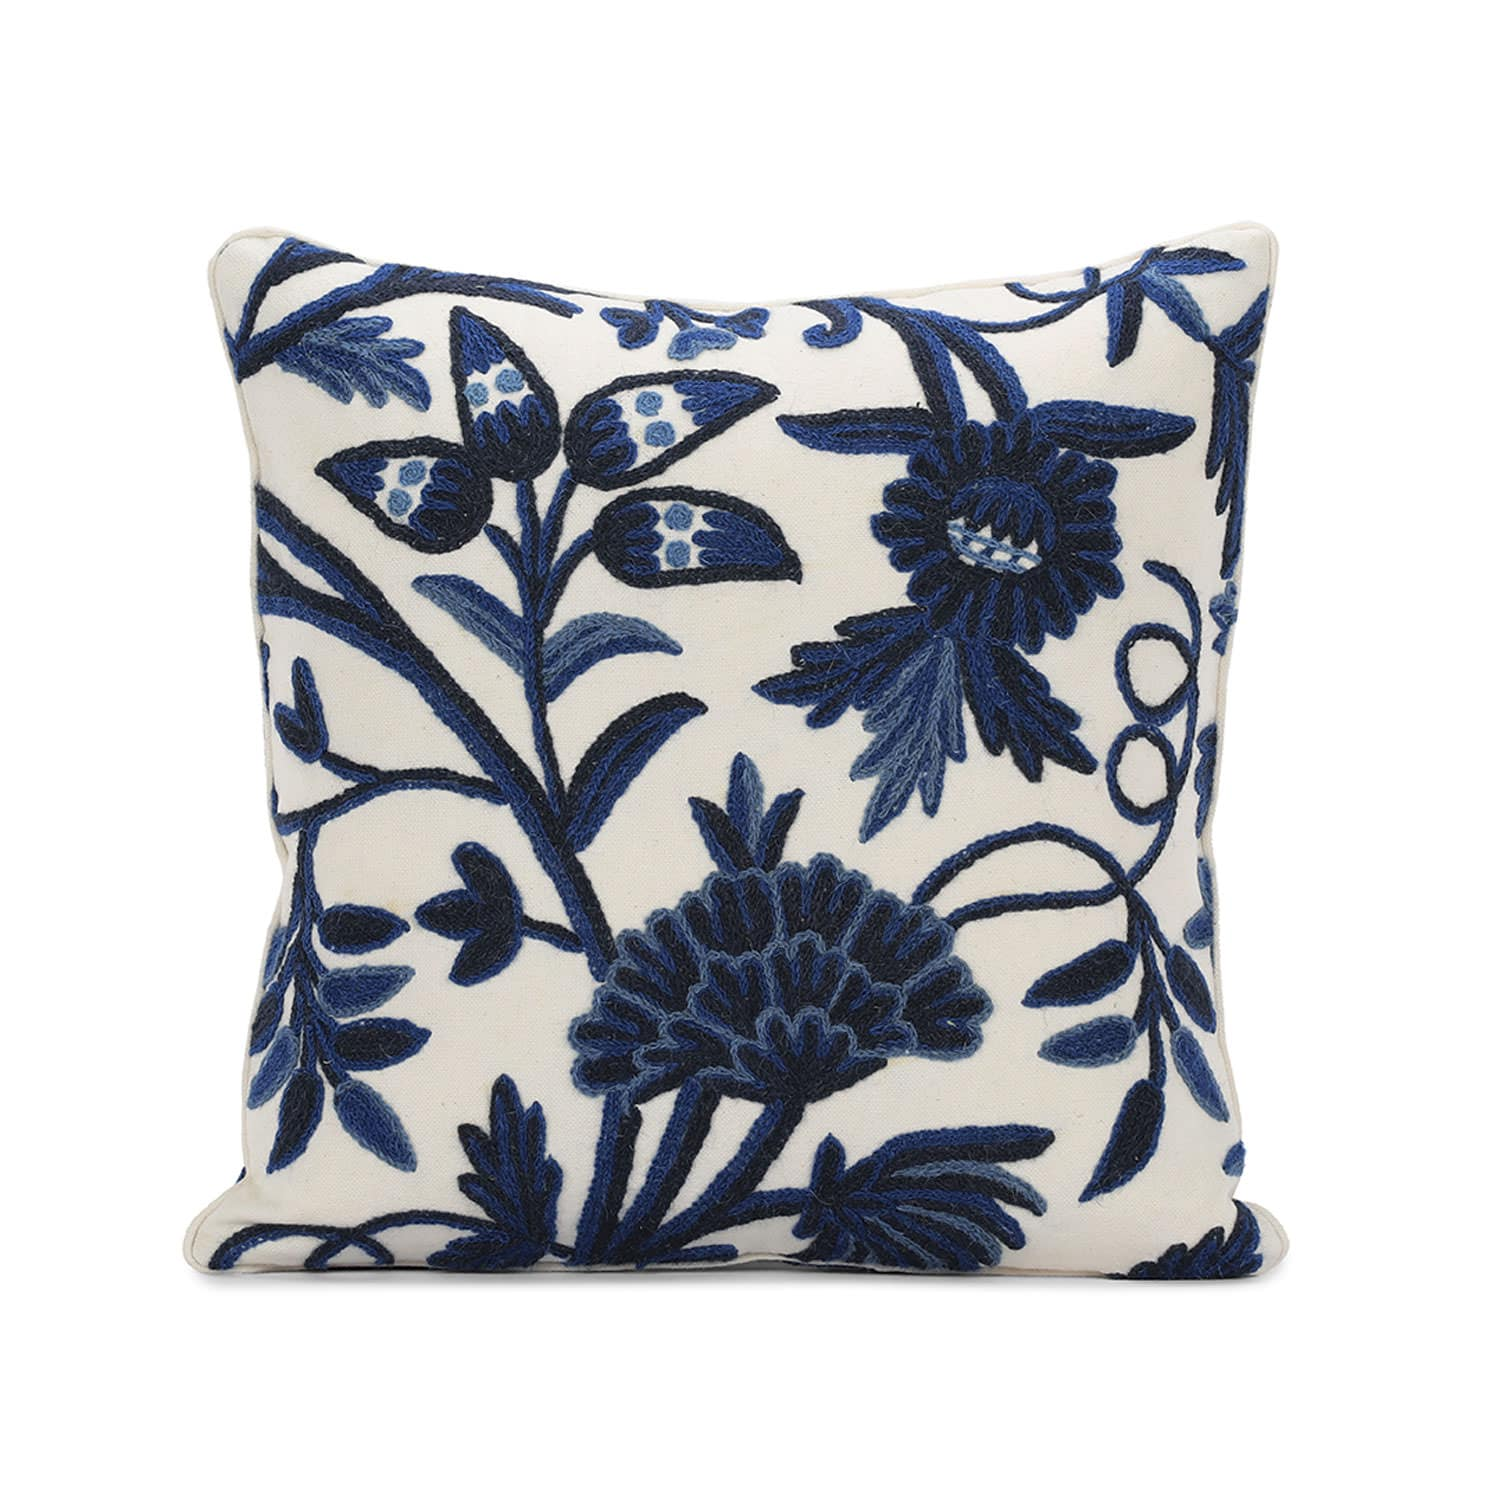 Norway Embroidered Cotton Crewel Cushion Covers - Pair